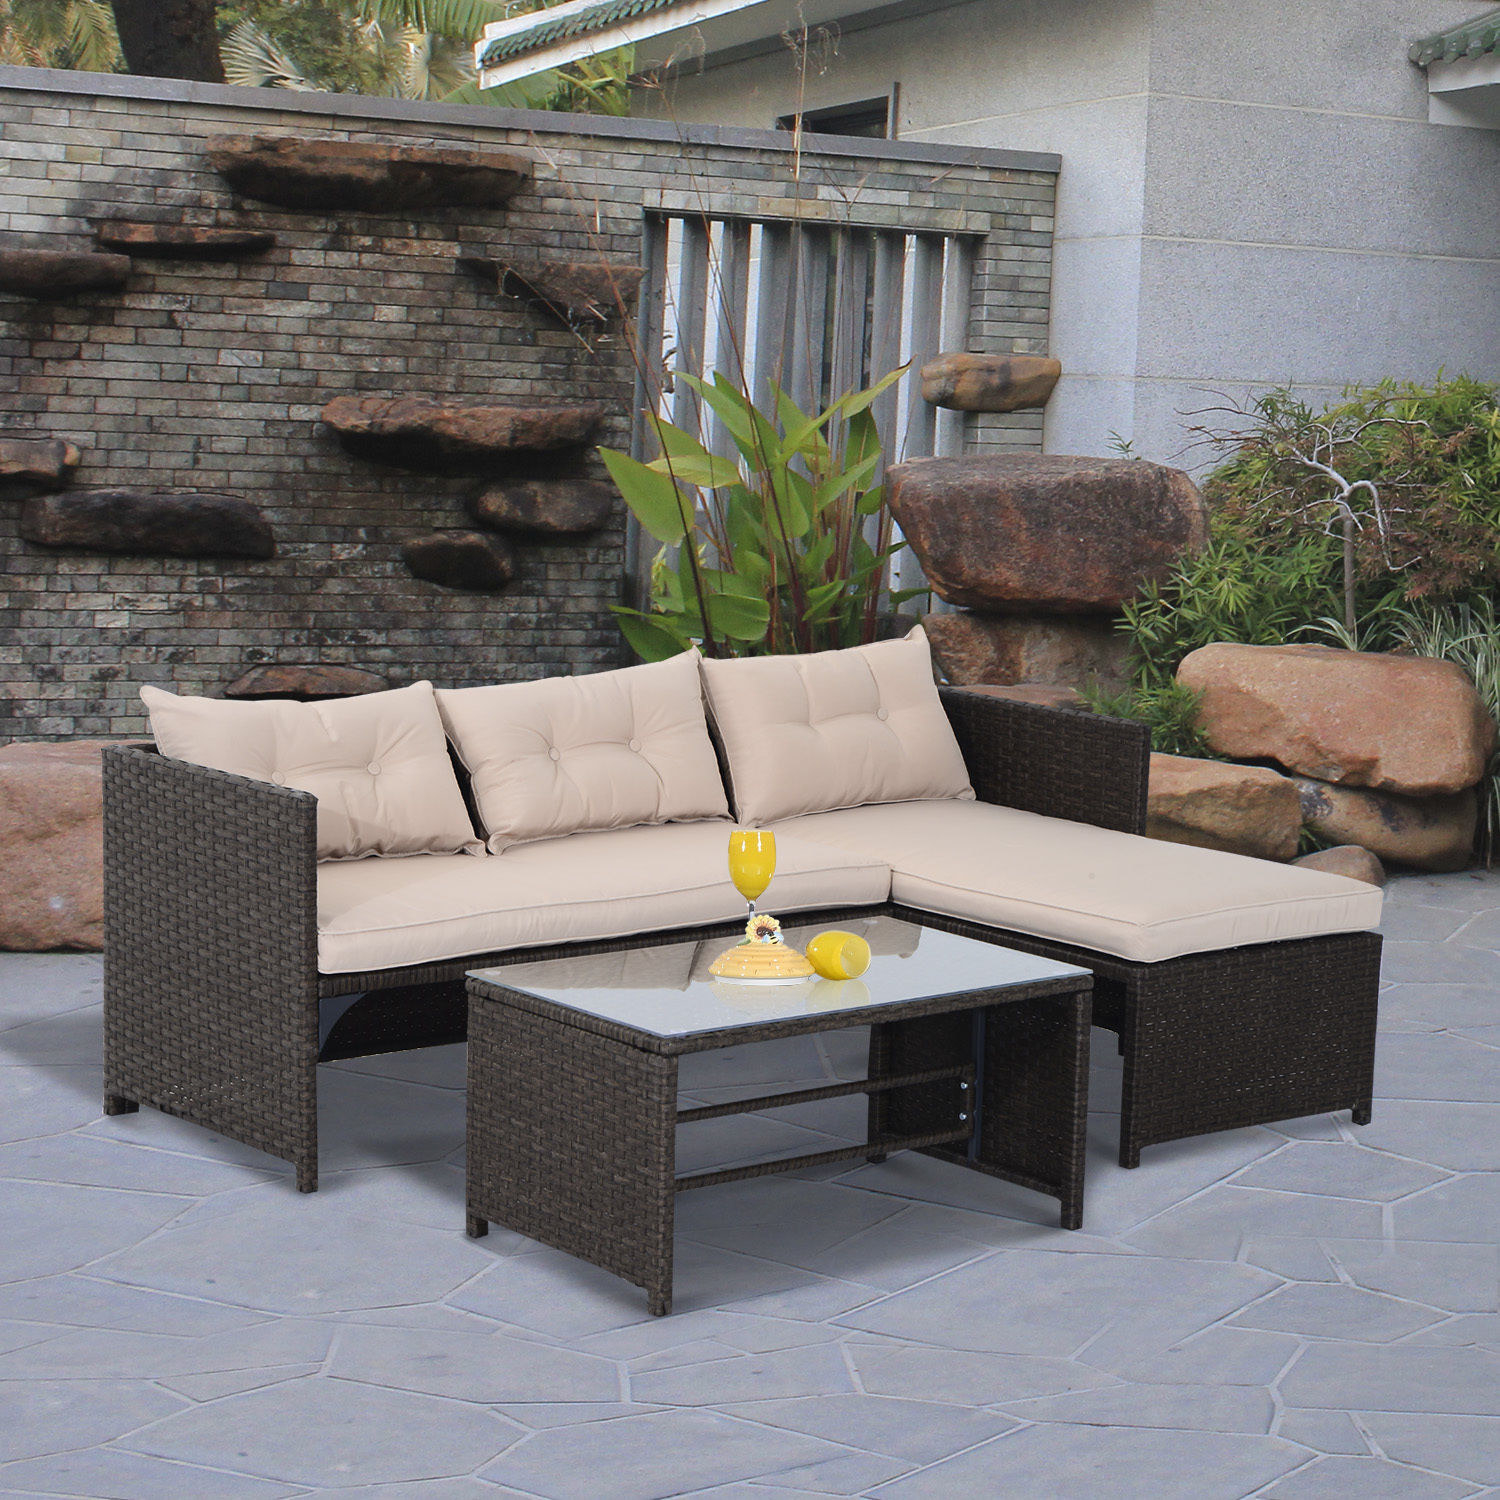 28 Pieces Of Outdoor Furniture From Walmart That Only Look